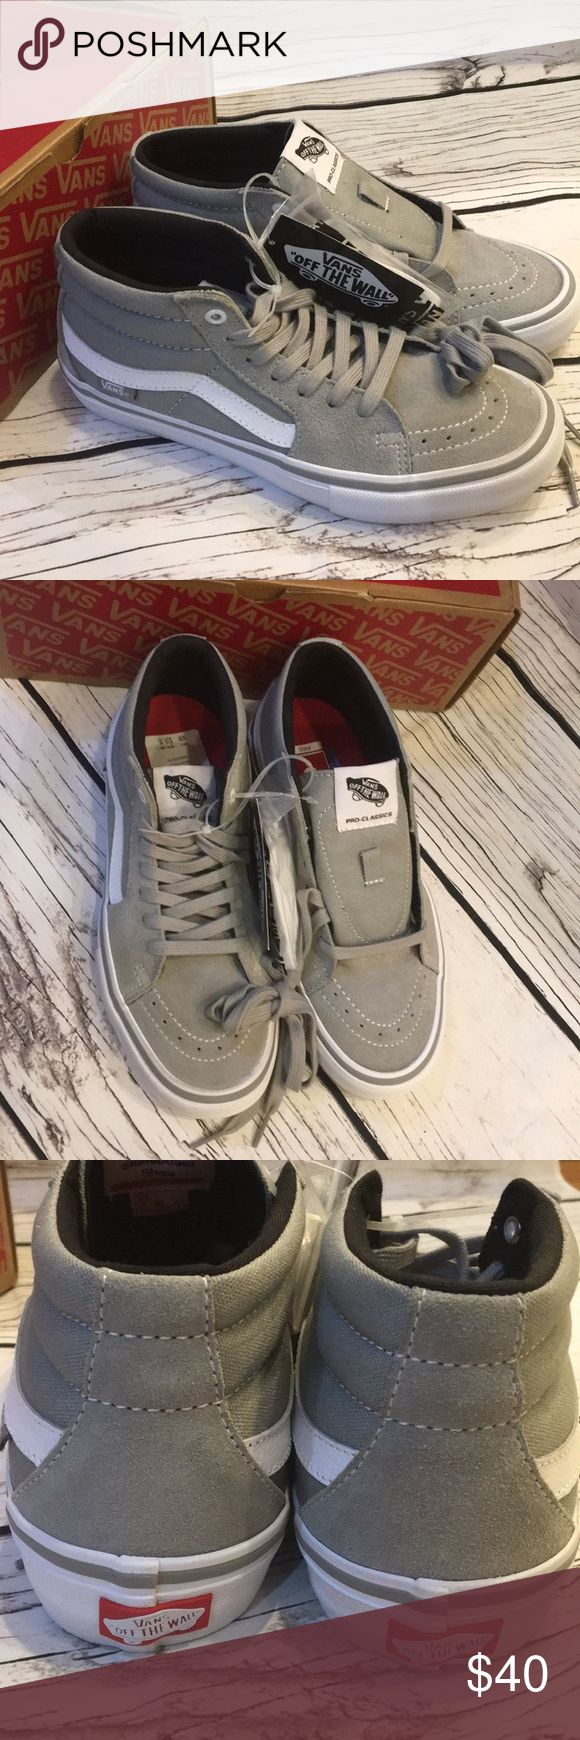 VANS SK8 Mid Pro Drizzle Gray Ankle Shoes 6.5 New In Box Retails: $75 Comes with extra laces Size 6.5 Men Vans Shoes Athletic Shoes